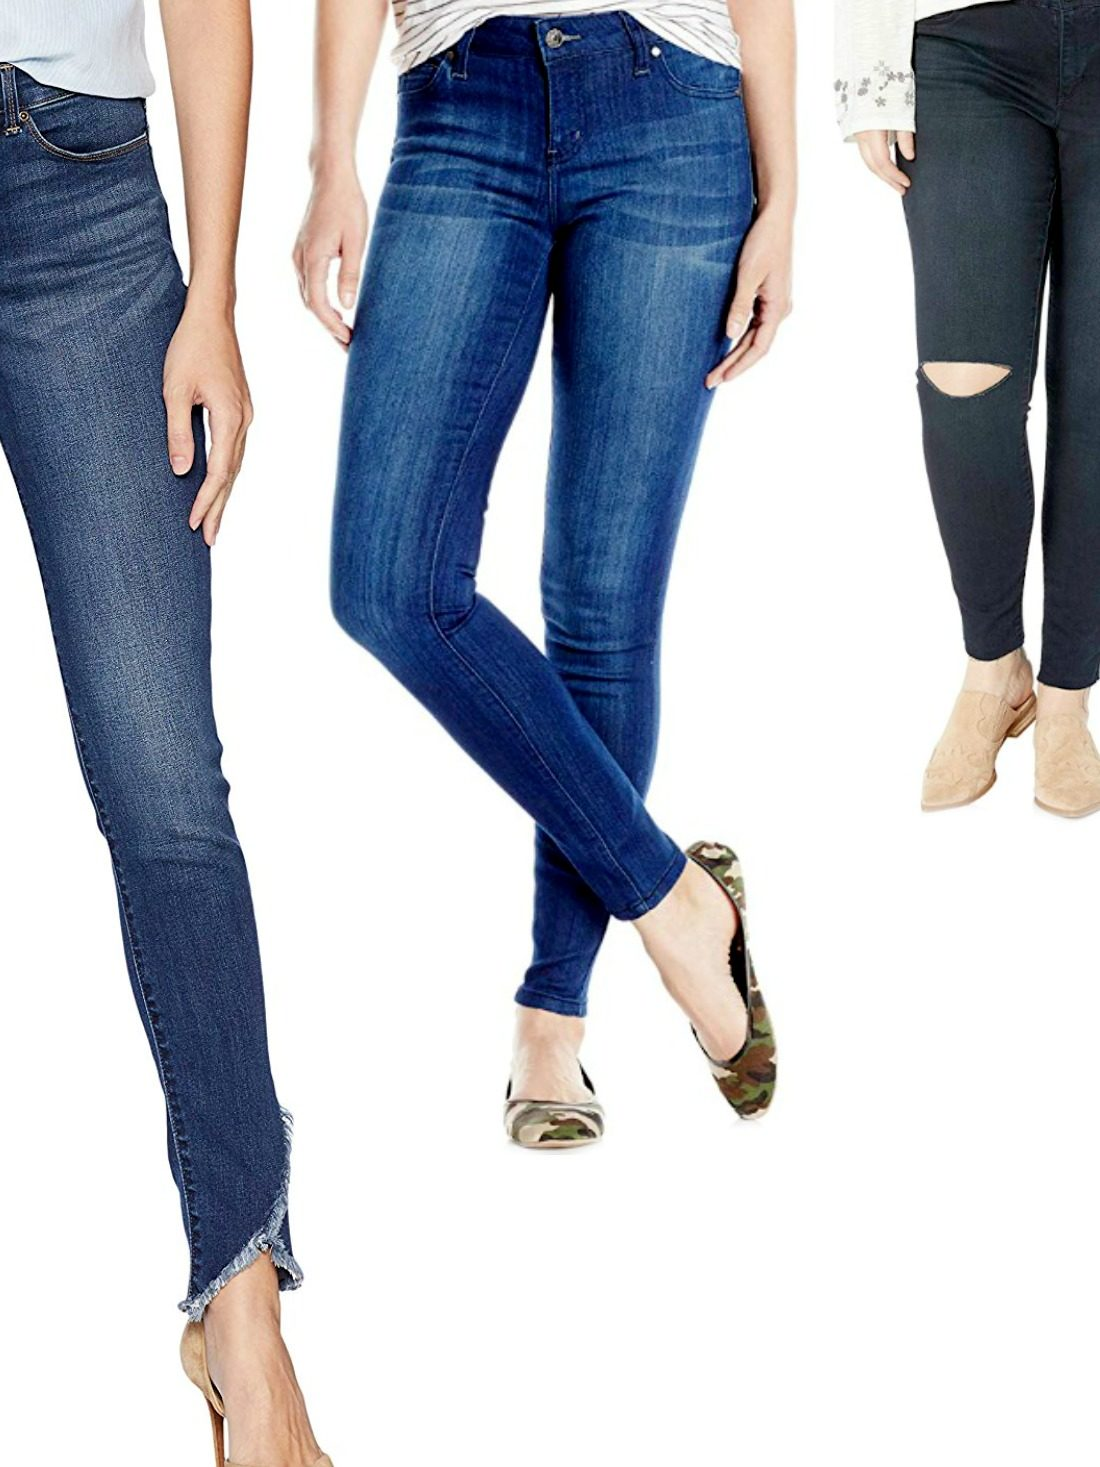 Distressed because your skinnies aren't working for you? Fret not! We are here to peel the seal with our list of the best skinny jeans for women that you won't get ENOUGH OFF!